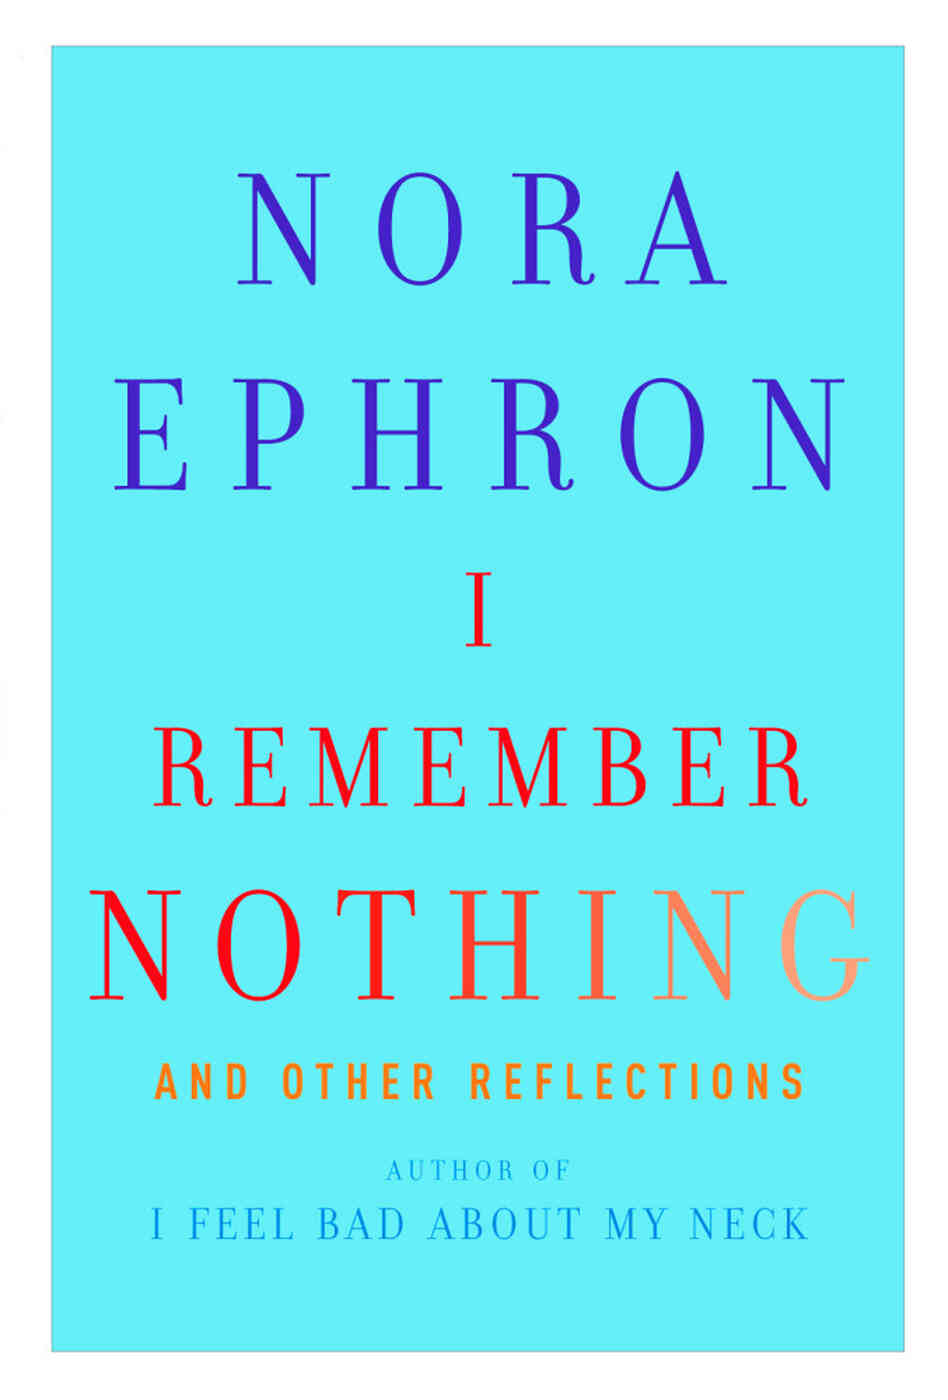 """nora ephron small breasts essay —the late, great nora ephron, writing for esquire in may 1972 """"a few words  about breasts"""" later appeared in ephron's classic 1975 essay."""